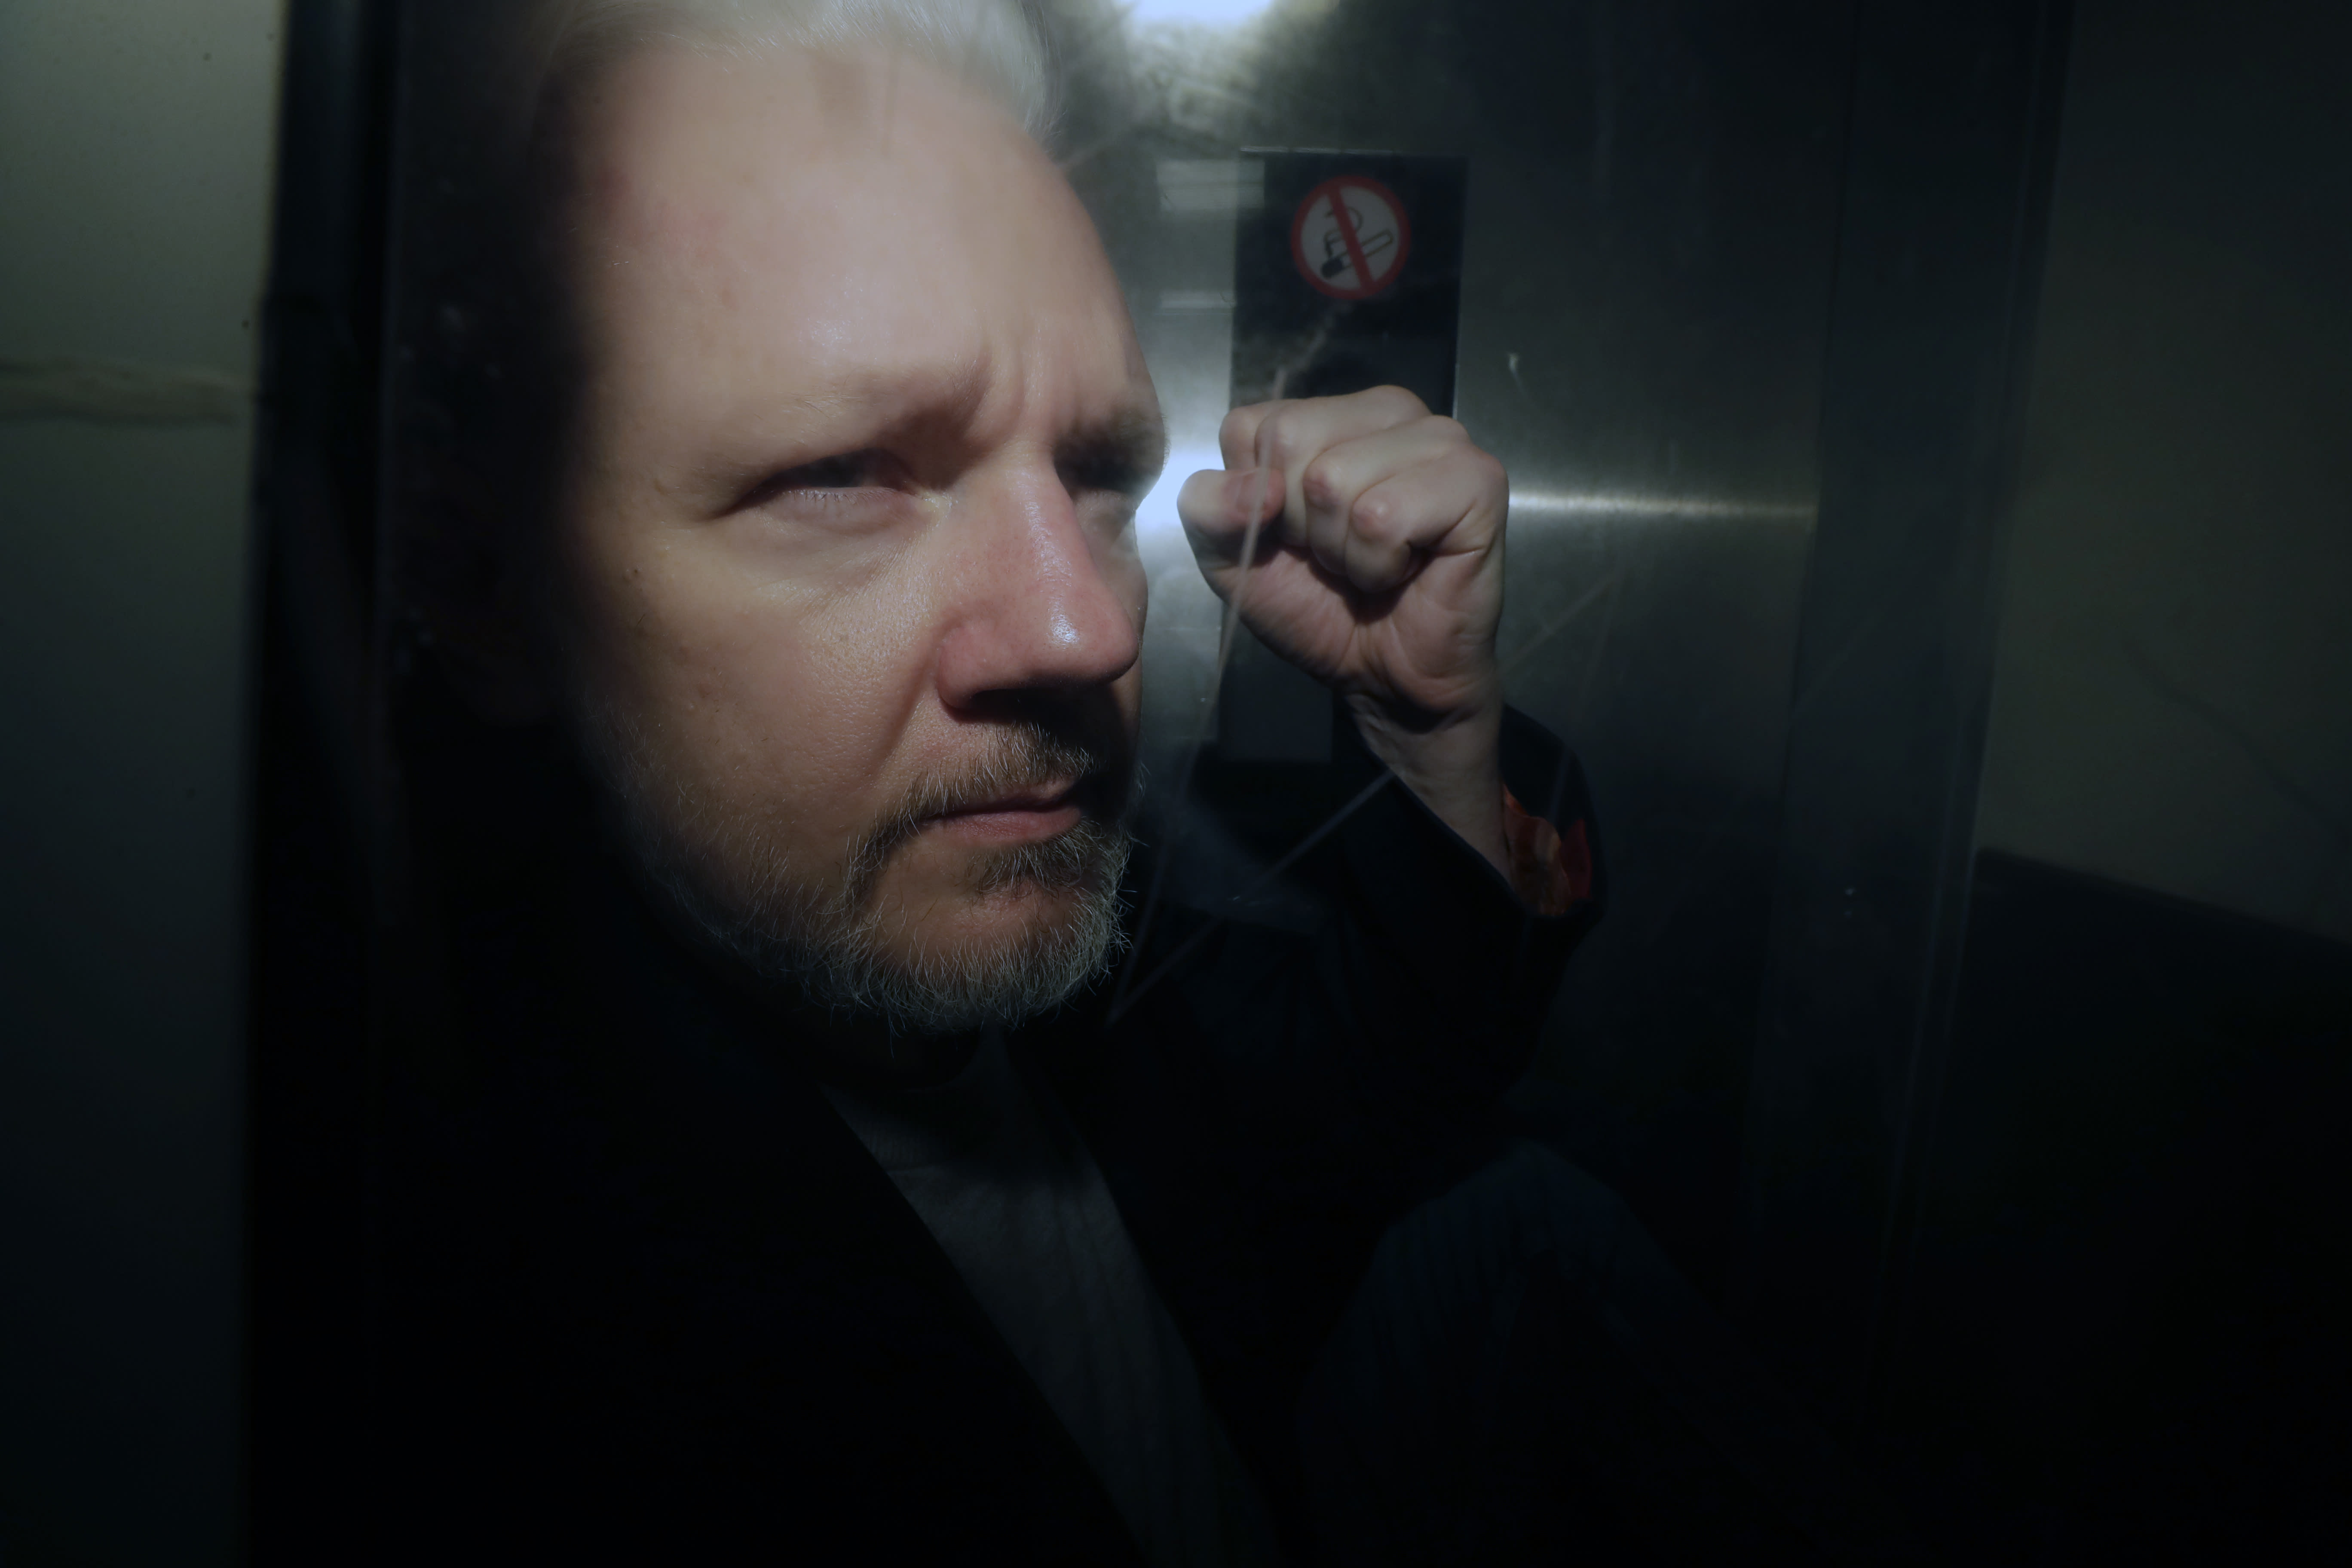 New US charges against Assange may slow extradition from UK